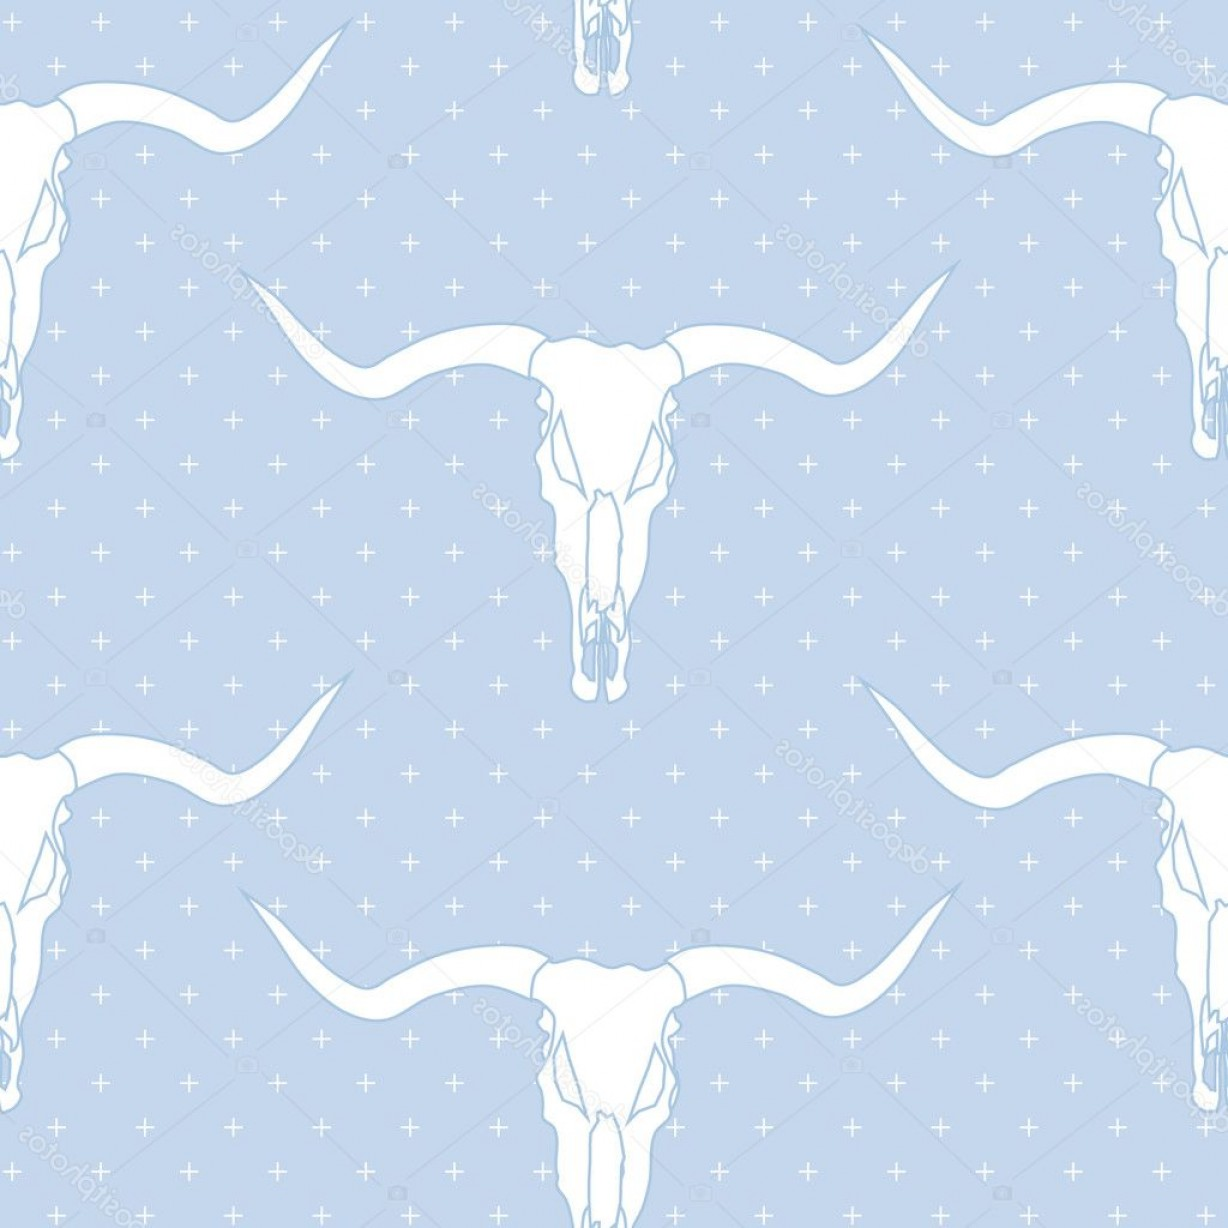 Longhorn Skull Vector: Stock Illustration Longhorn Skull Vector Seamless Pattern